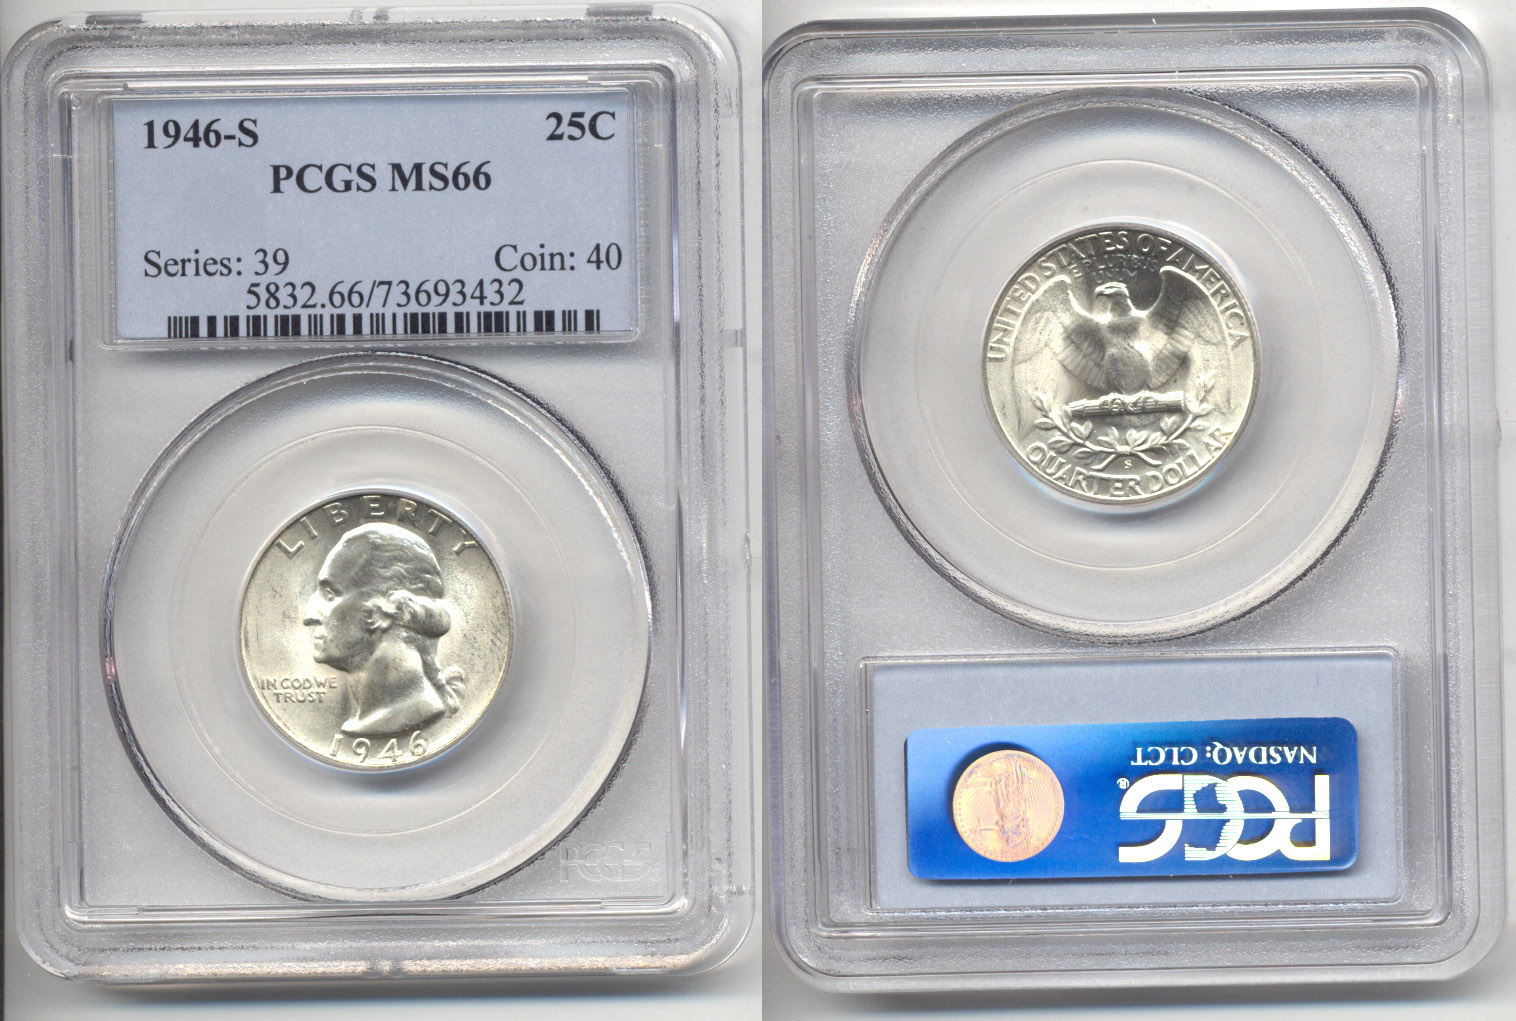 1946-S Washington Quarter PCGS MS-66 f